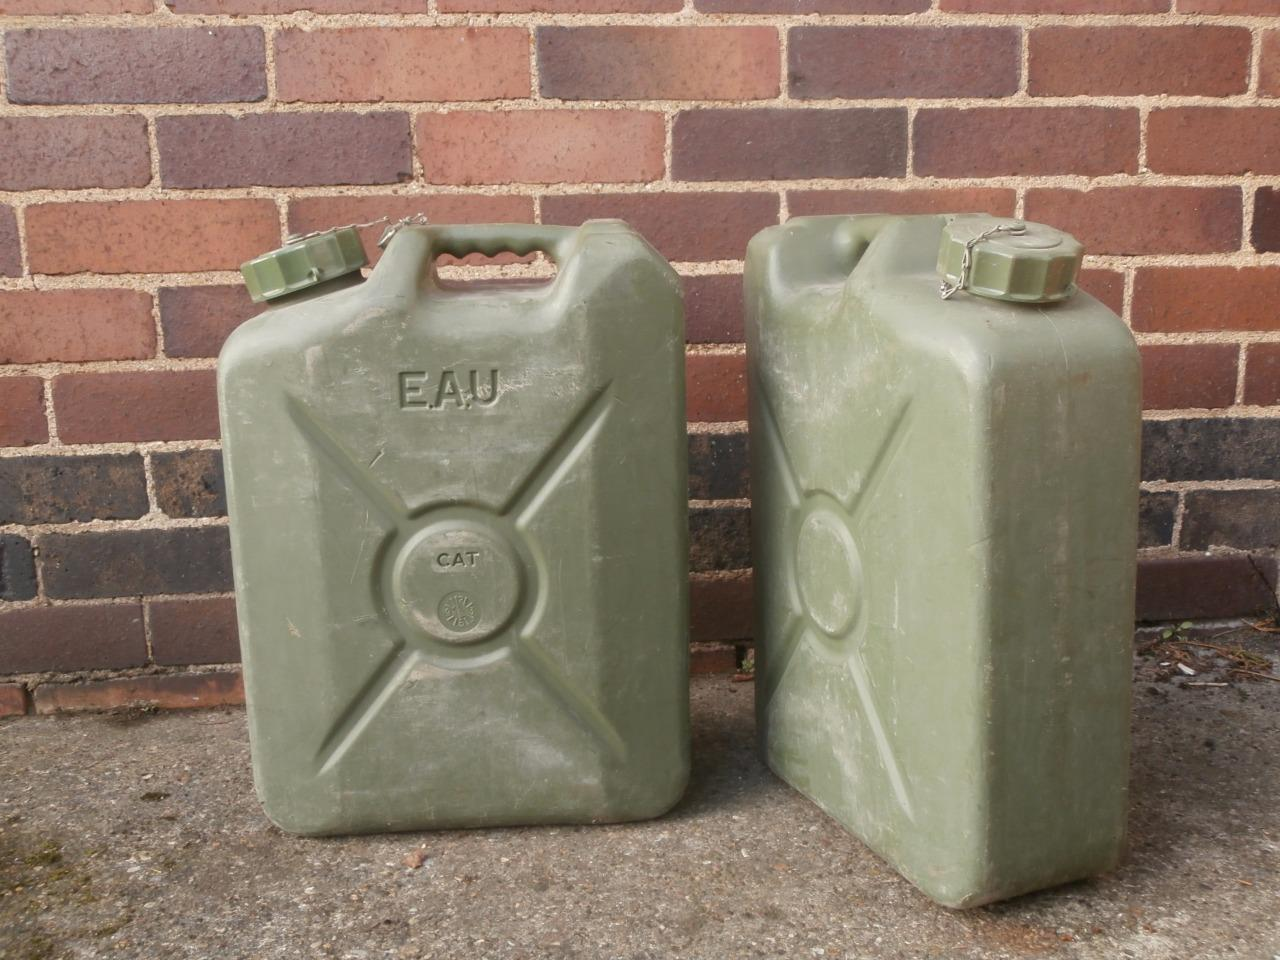 Petrol Prices In France >> French Military 20L Jerry Can Army Water Petrol Diesel Hardened Plastic 20 Litre | eBay